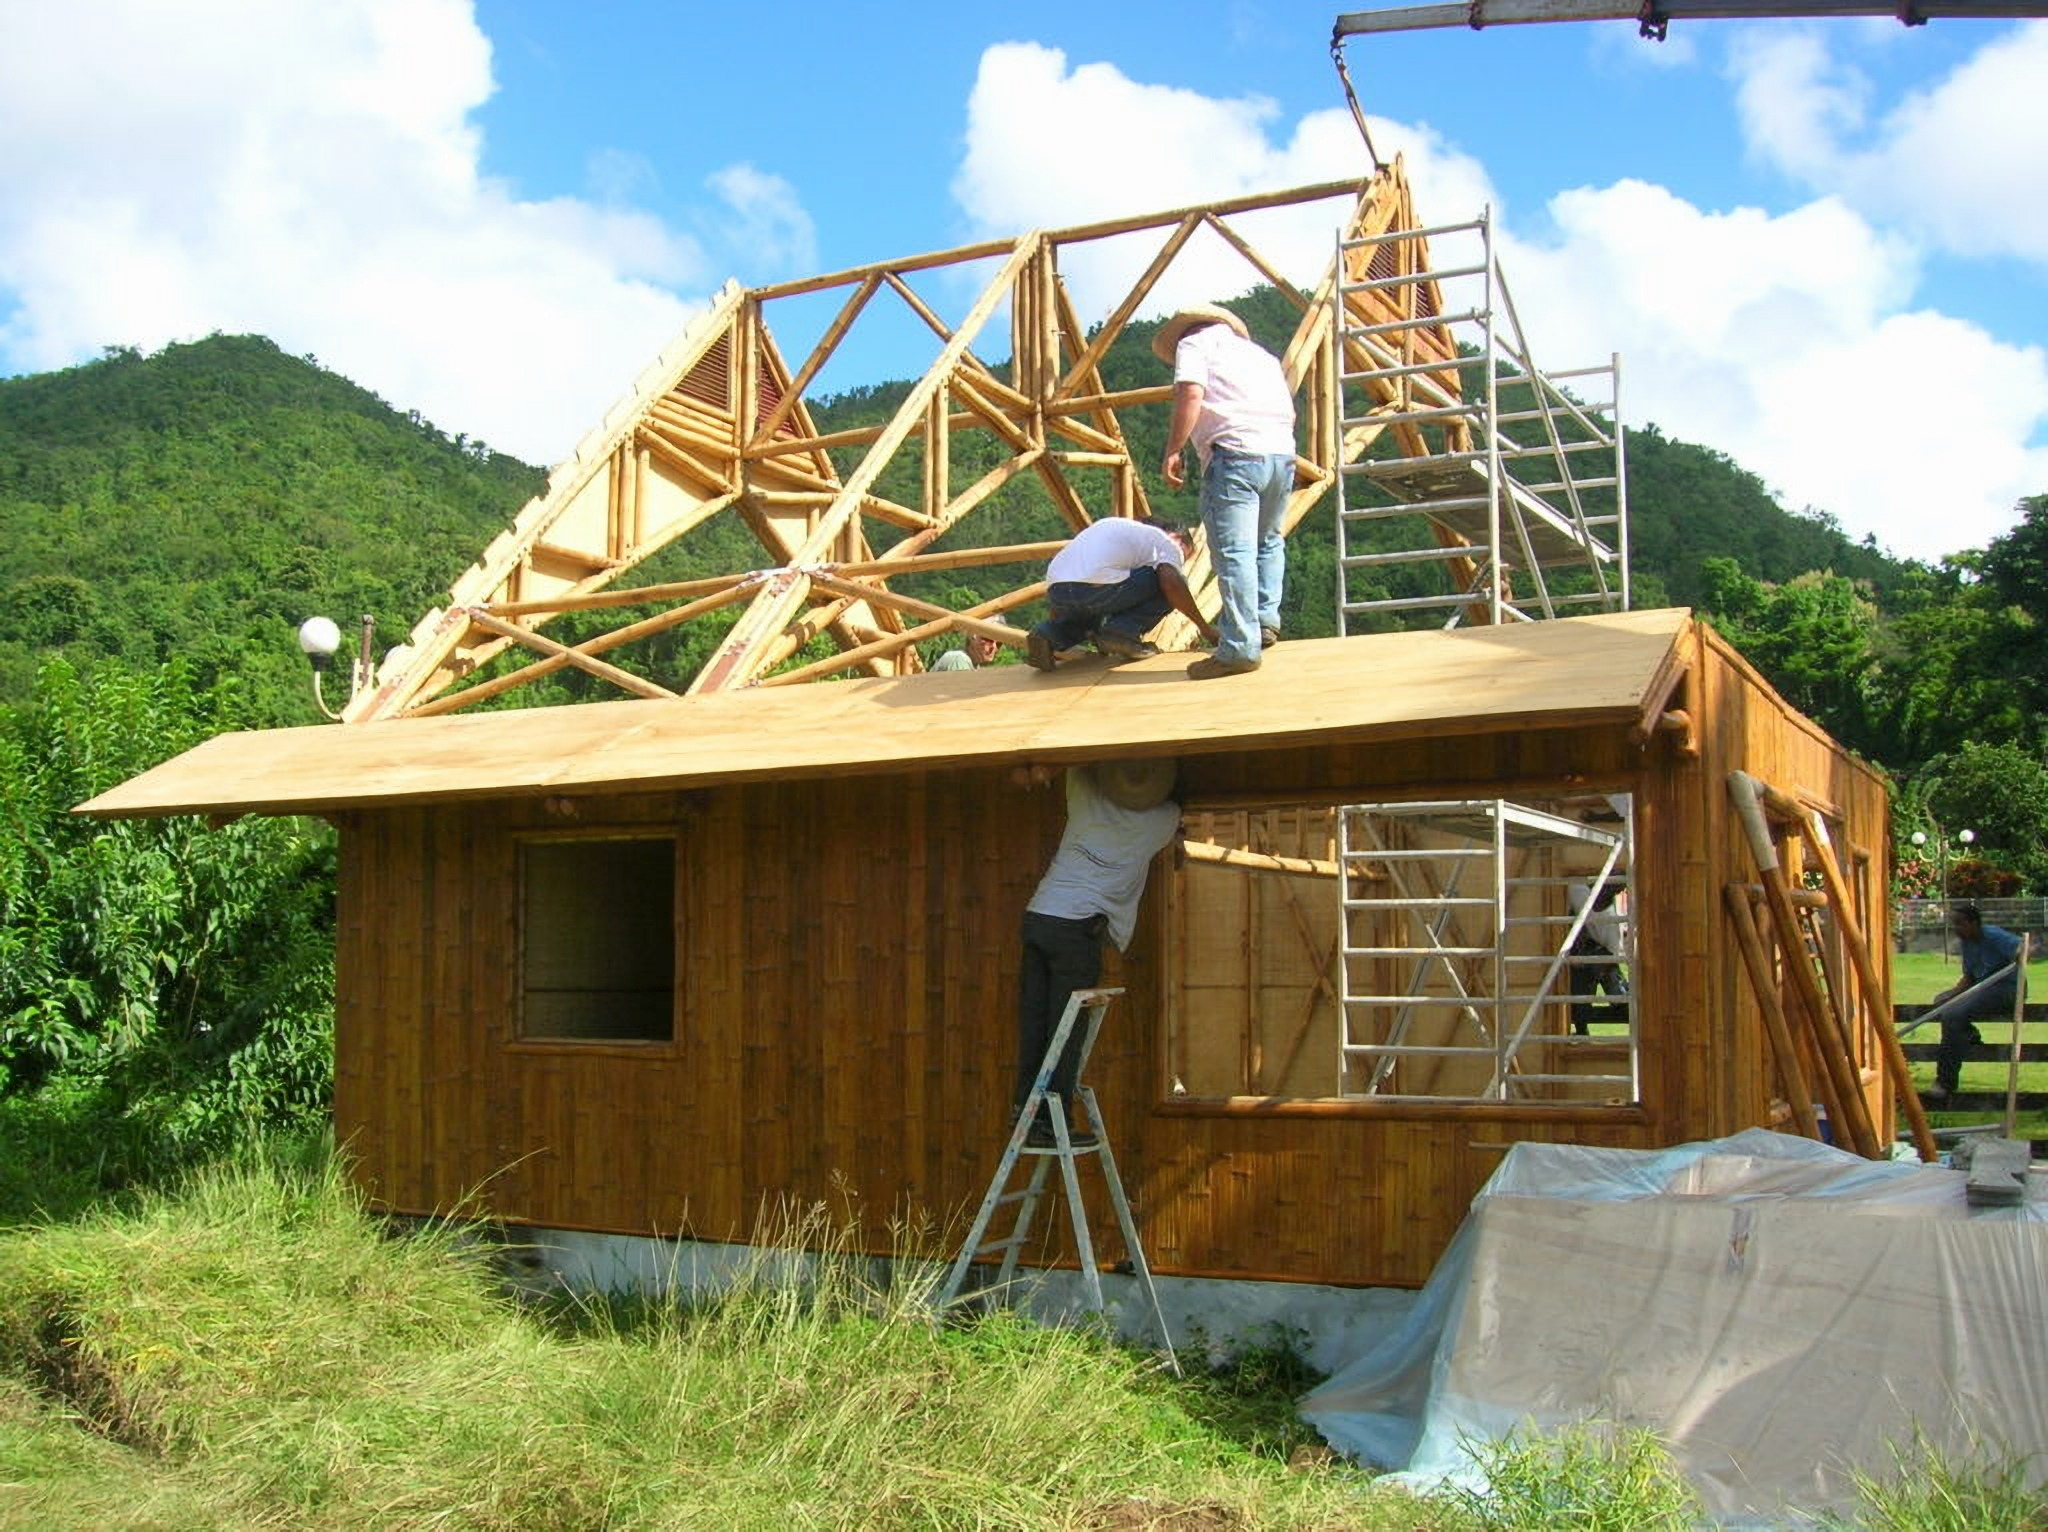 House made entirely of bamboo